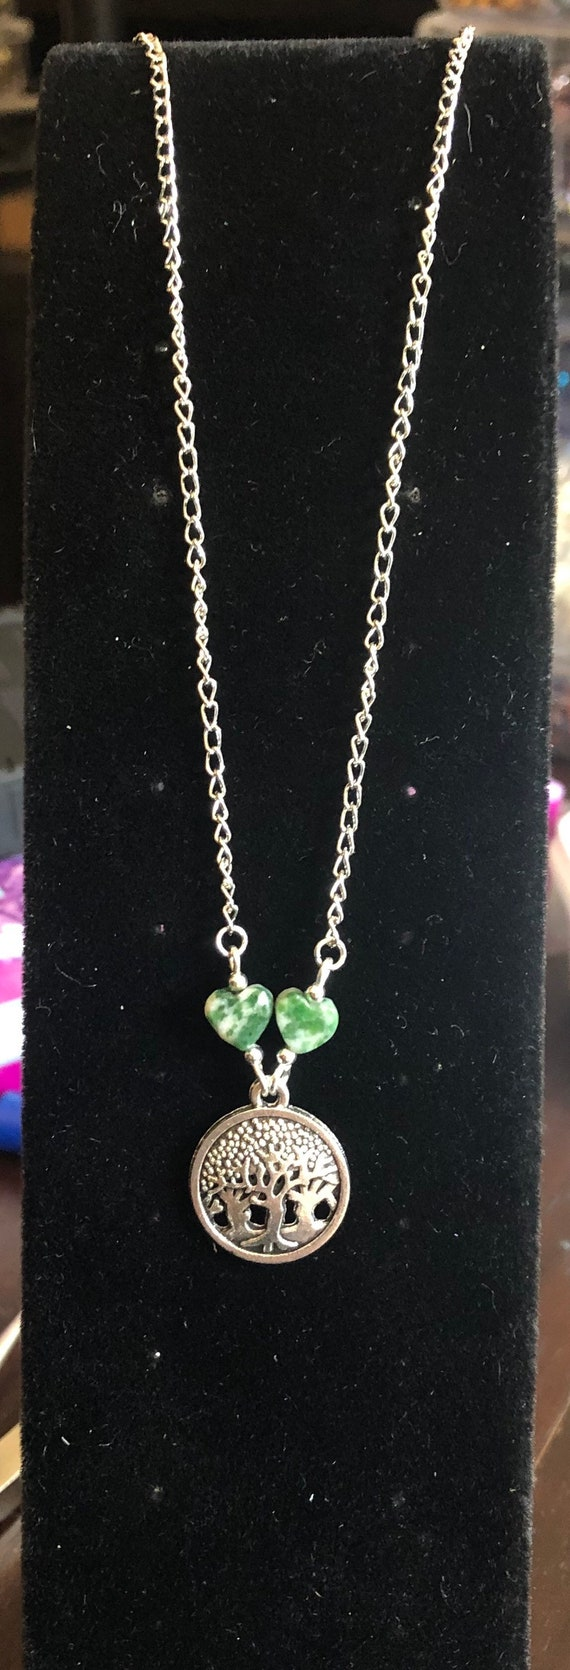 Forest Trees Necklace with Tree Agate Heart beads 18 inches long